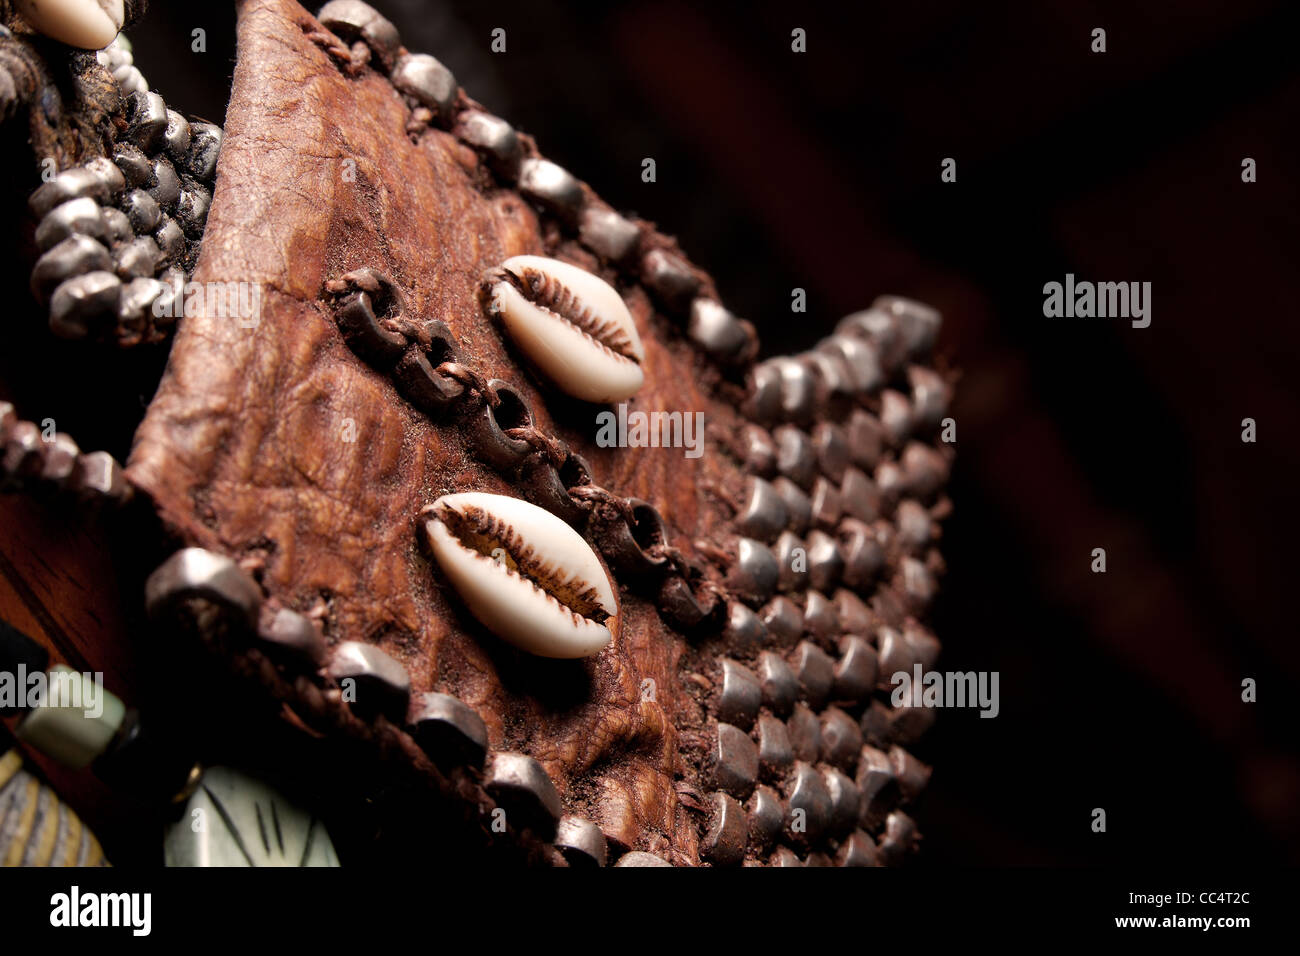 natural African tribal cowrie shell beads and leather pouch in market with a black background. - Stock Image